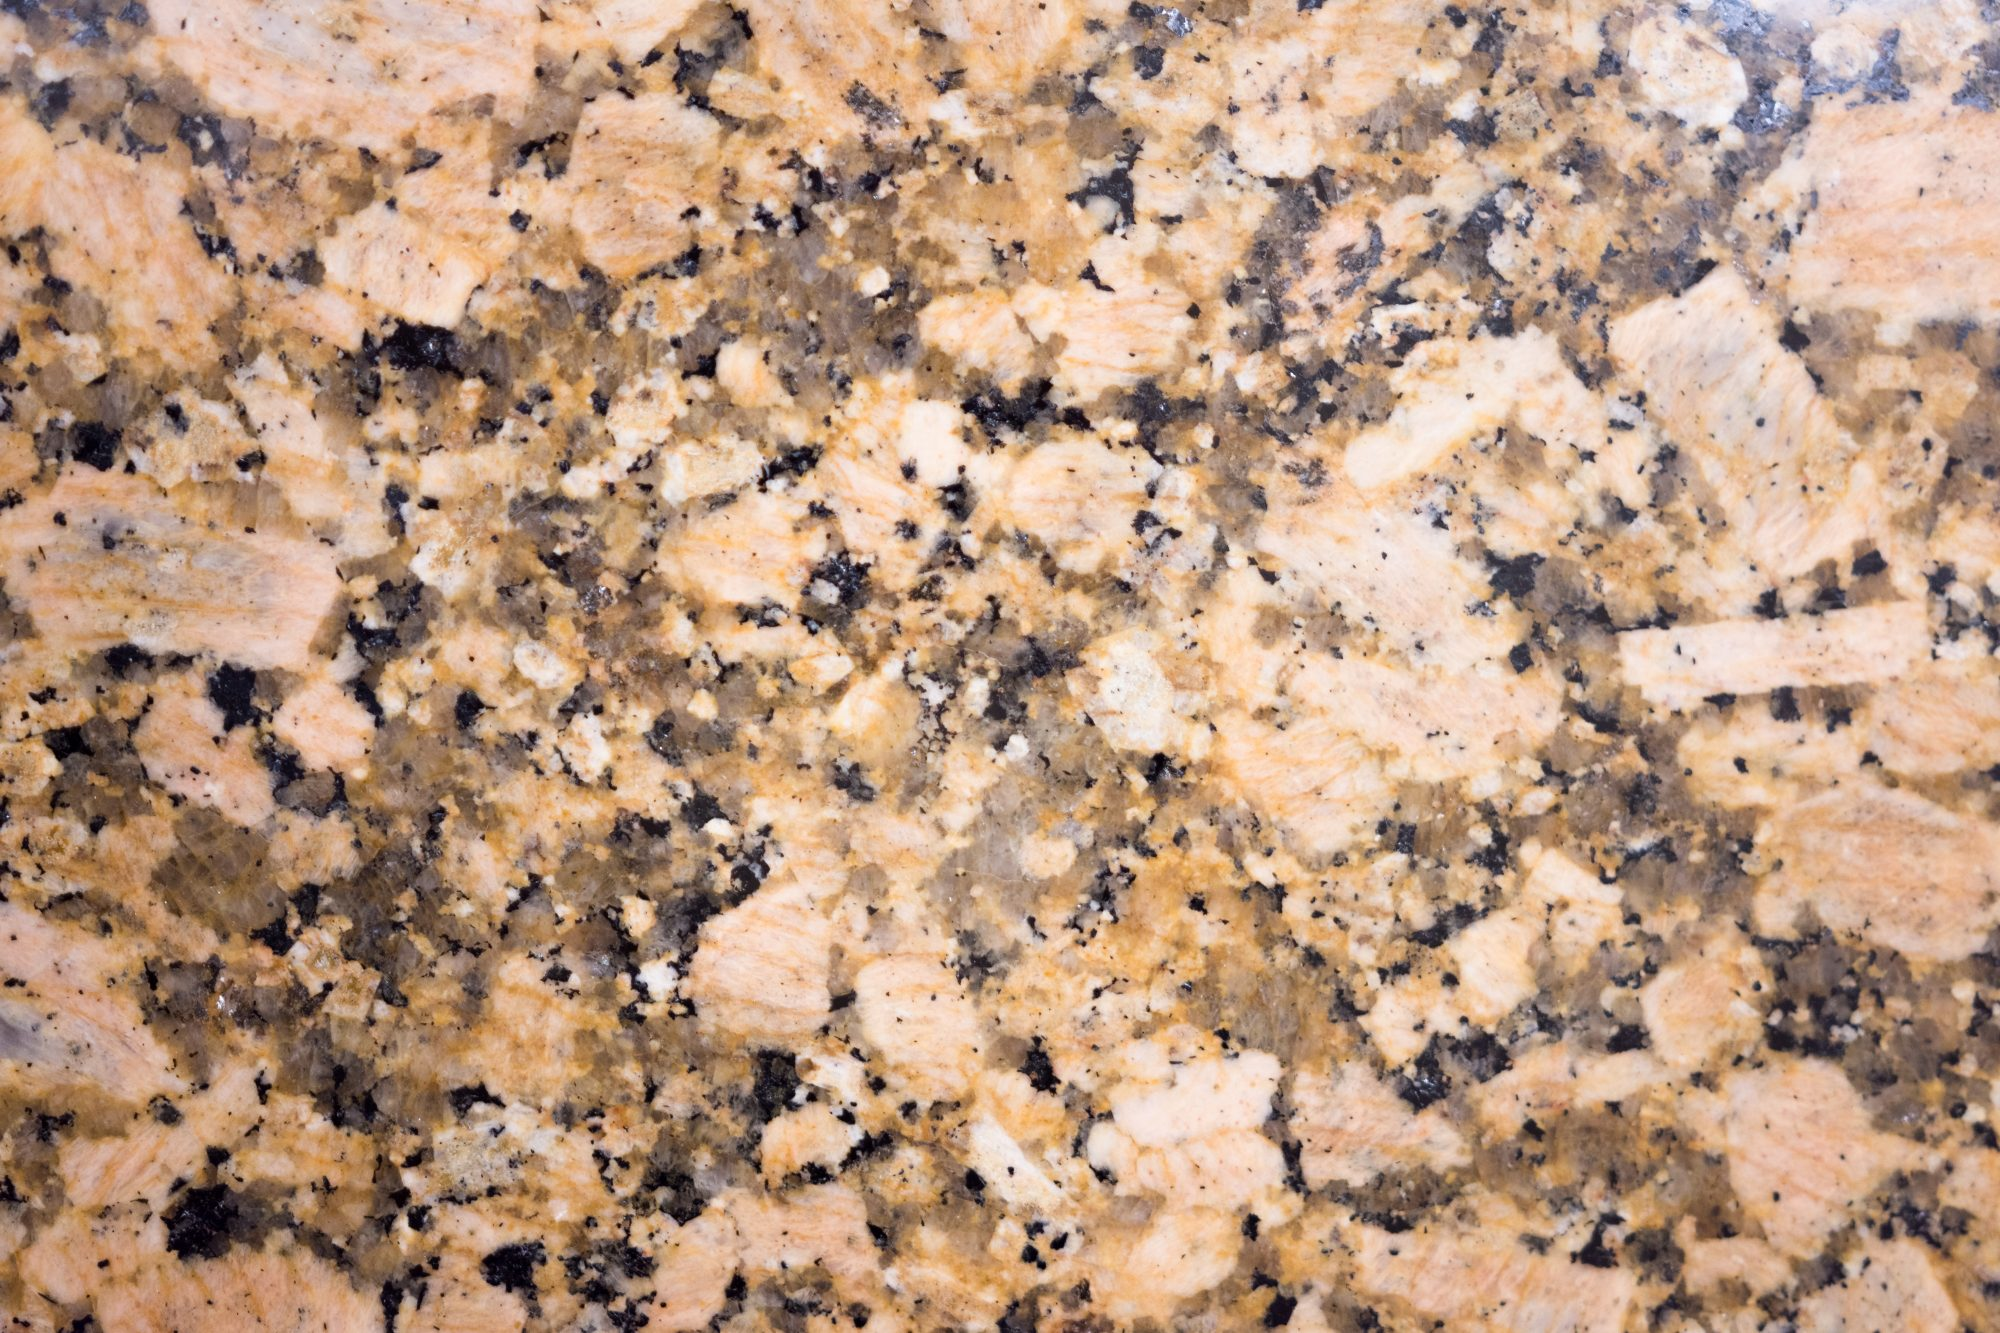 Speckled Granite